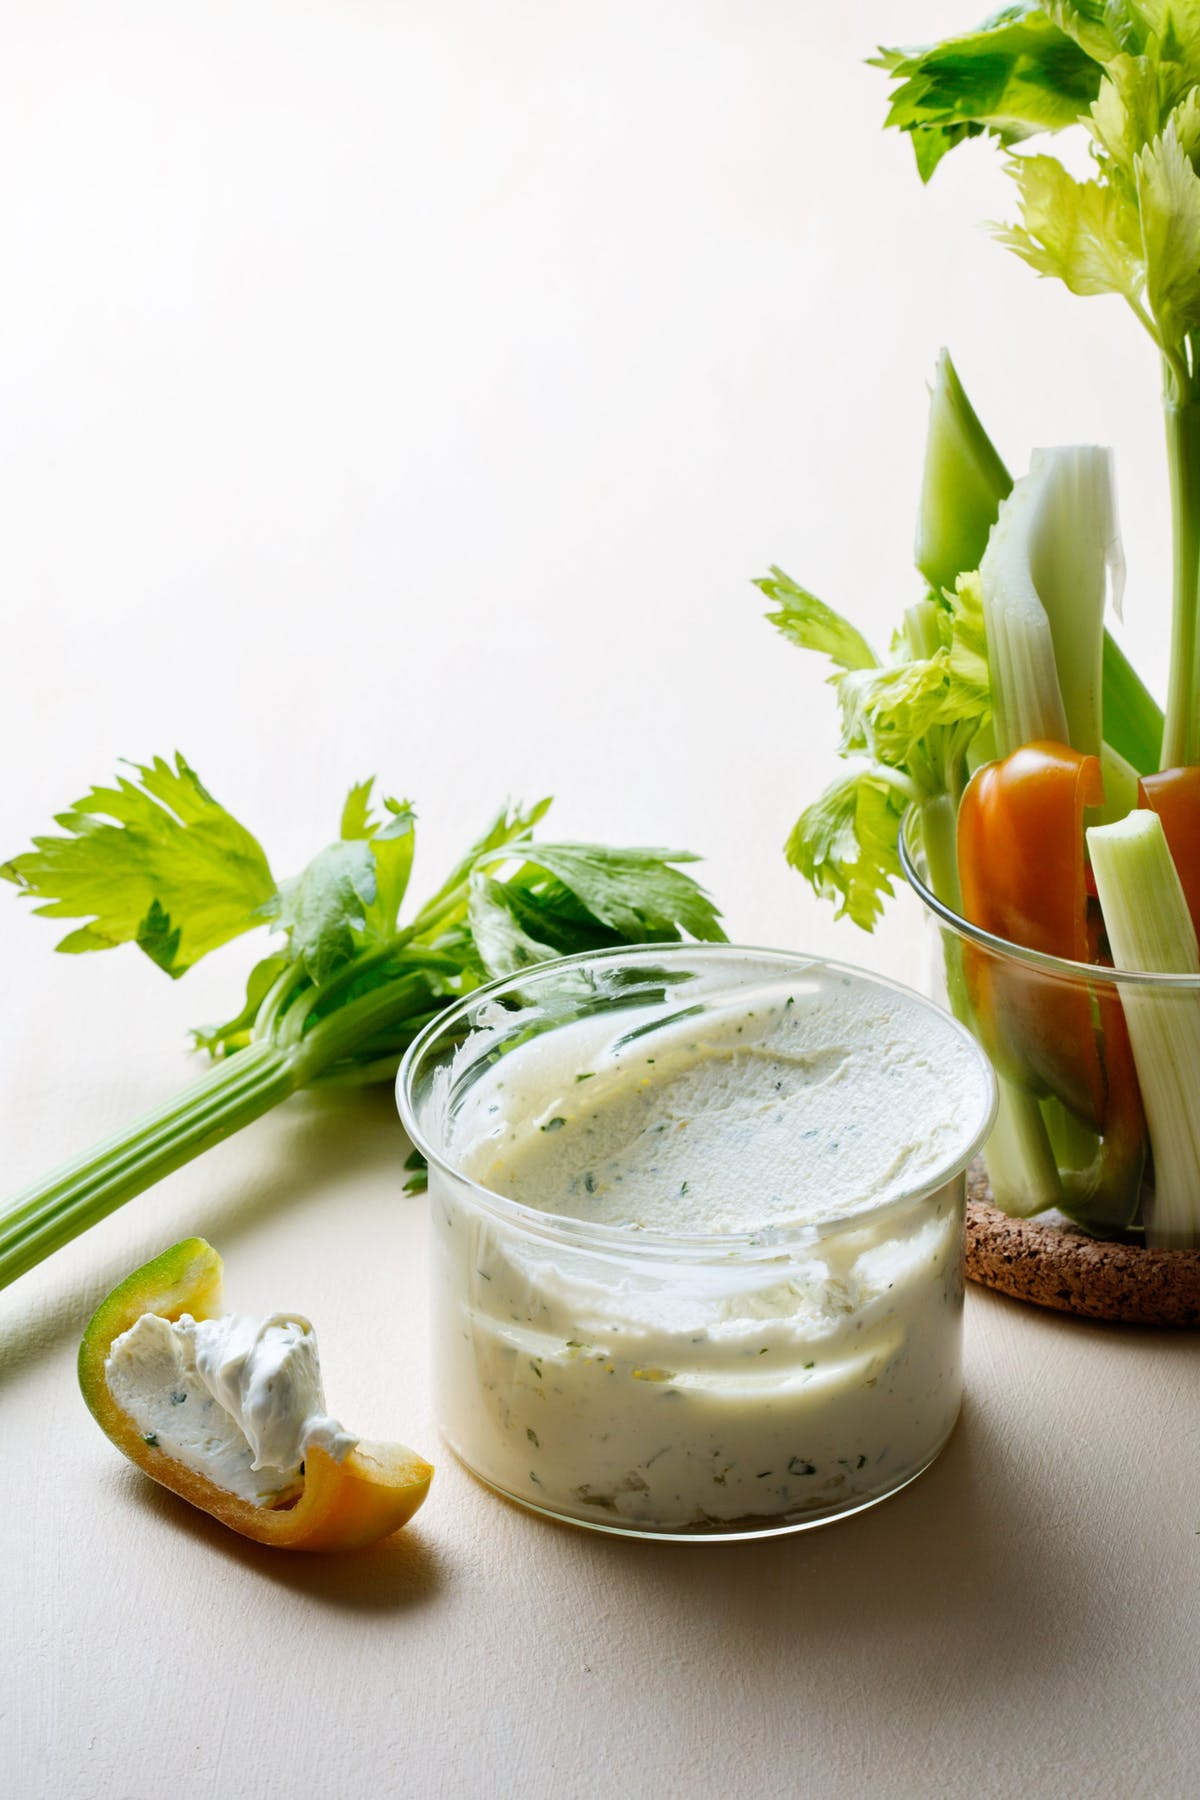 Low-carb cream cheese with herbs